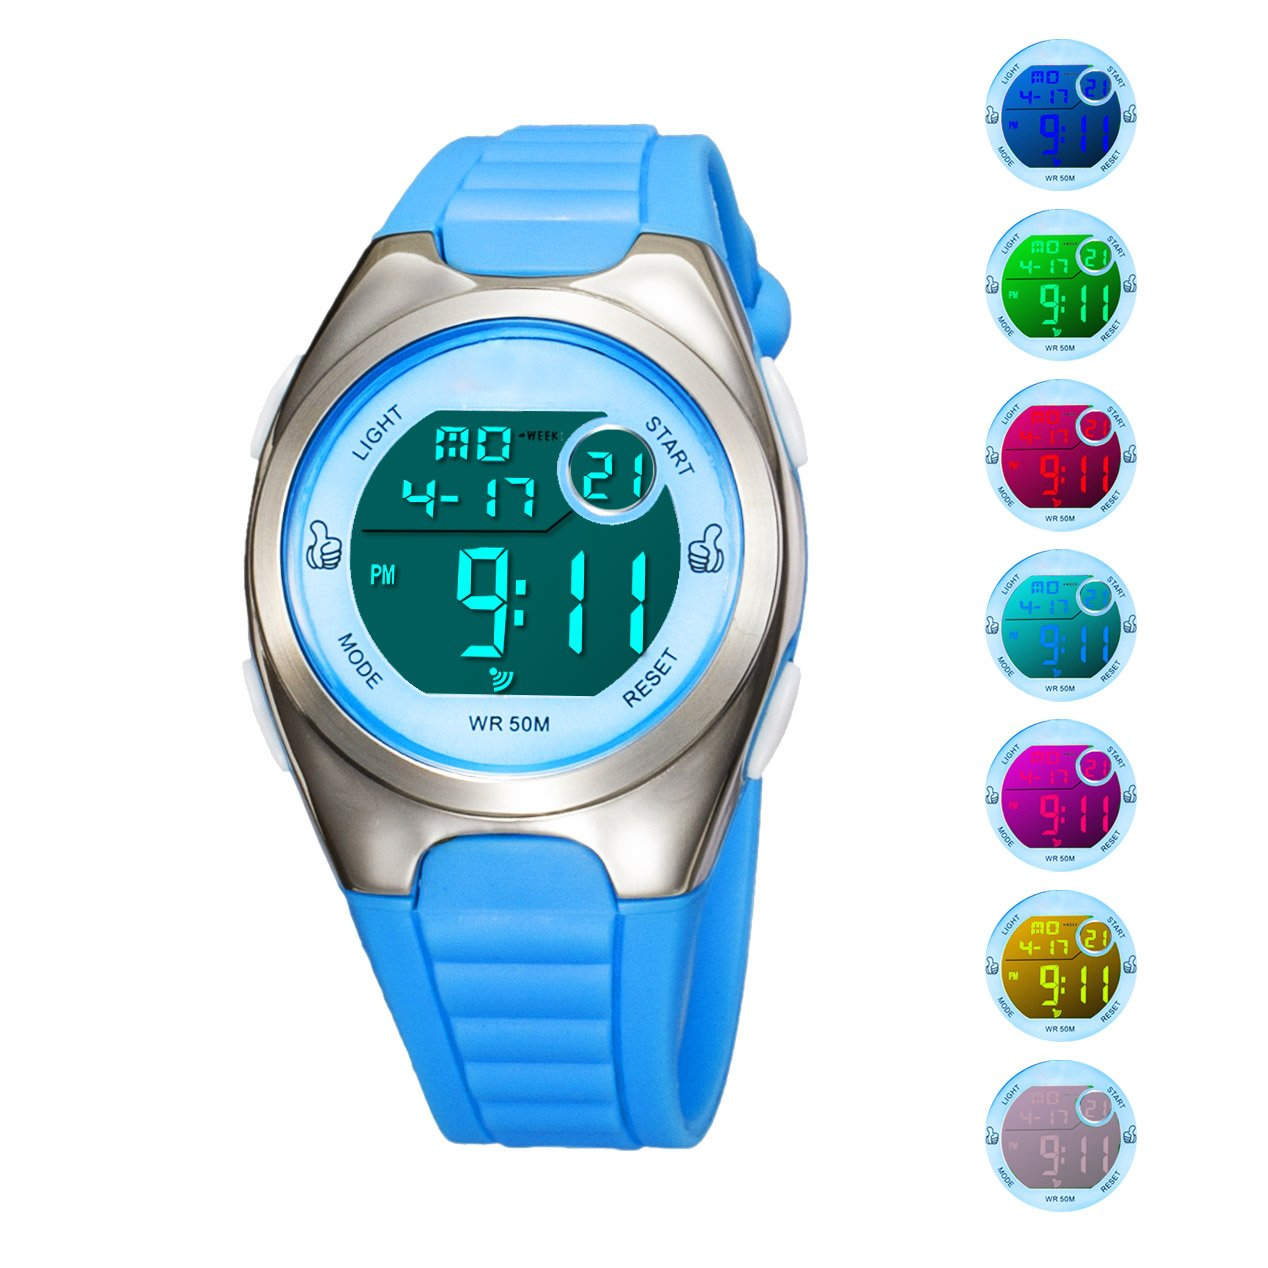 Kids Digital Sport Watch Outdoor Waterproof Watch with Alarm for Child Boy Girls Gift LED Kids Watch by Misskt